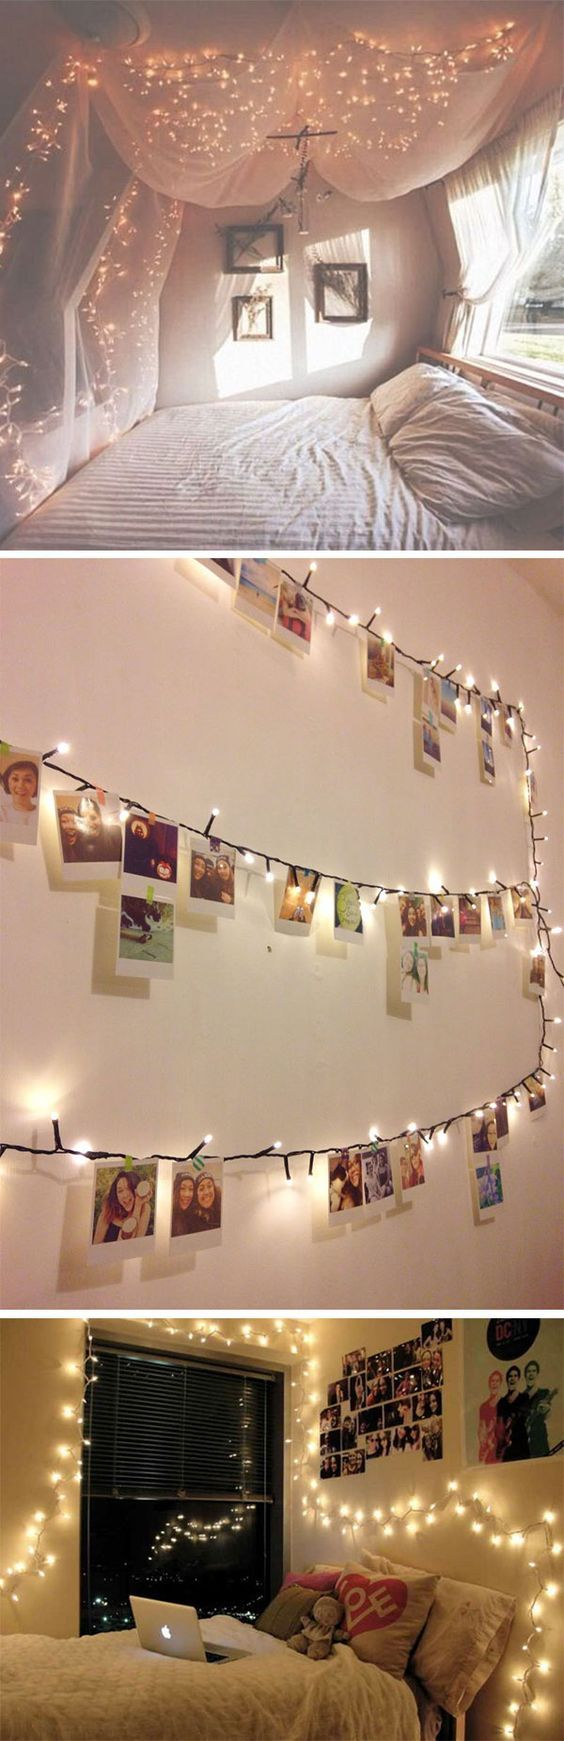 Tumblr bedrooms with lights - 13 Ways To Use Fairy Lights To Make Your Home Look Magical